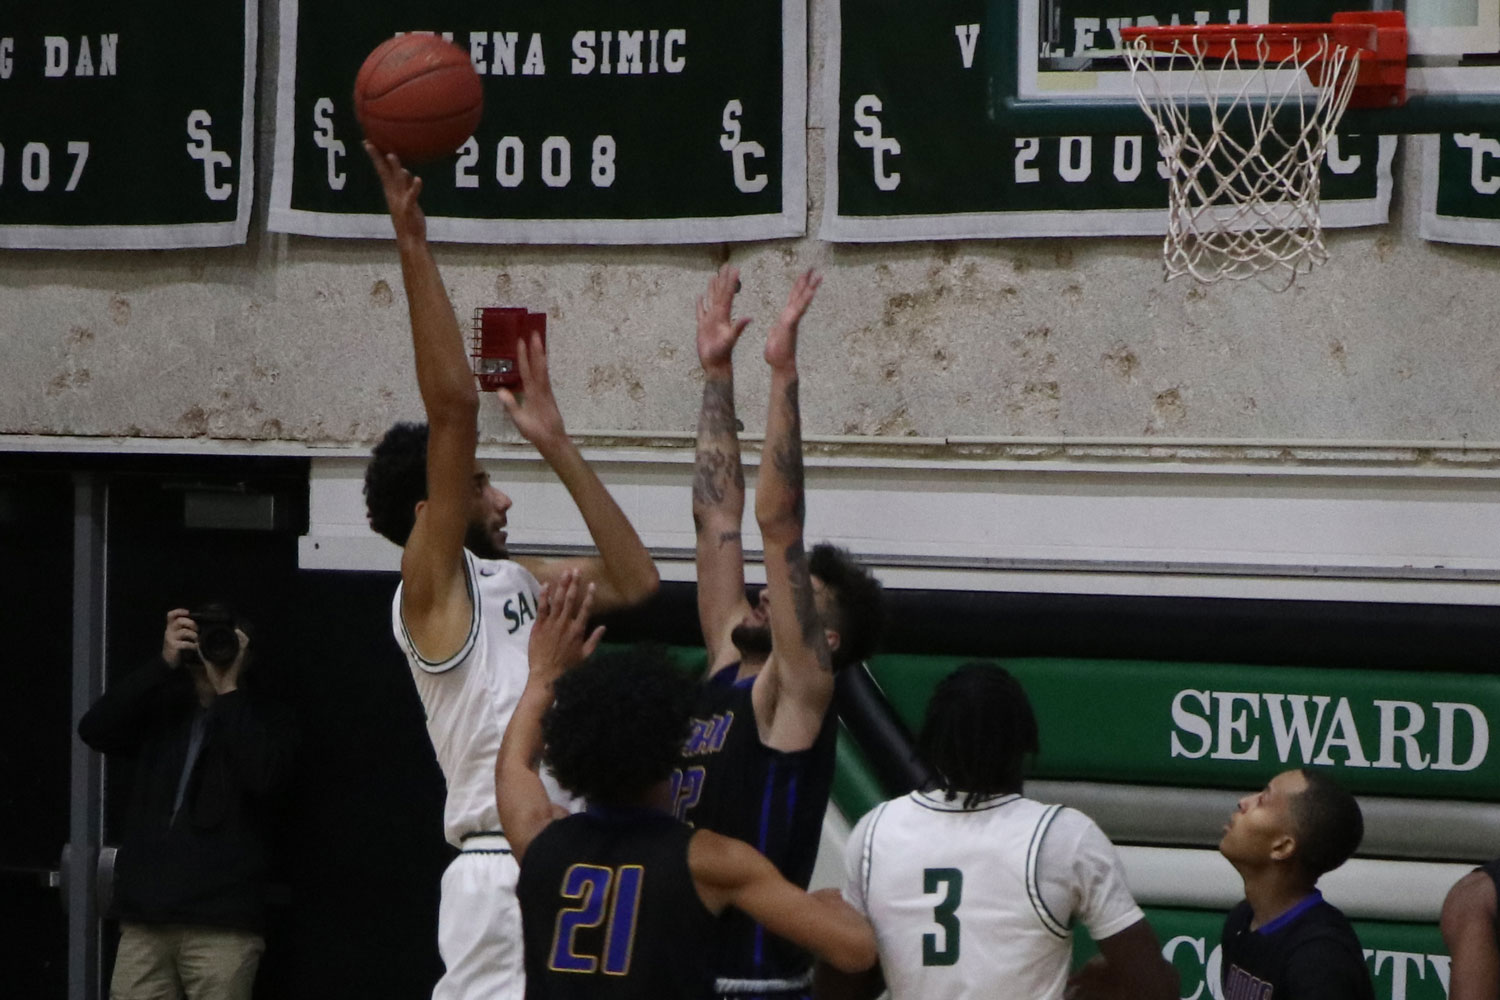 The Seward Saints are 5-1 in game play. Freshman Ahmed Ibrahim drives in for a layup, getting blocked and put on the line to shoot two.